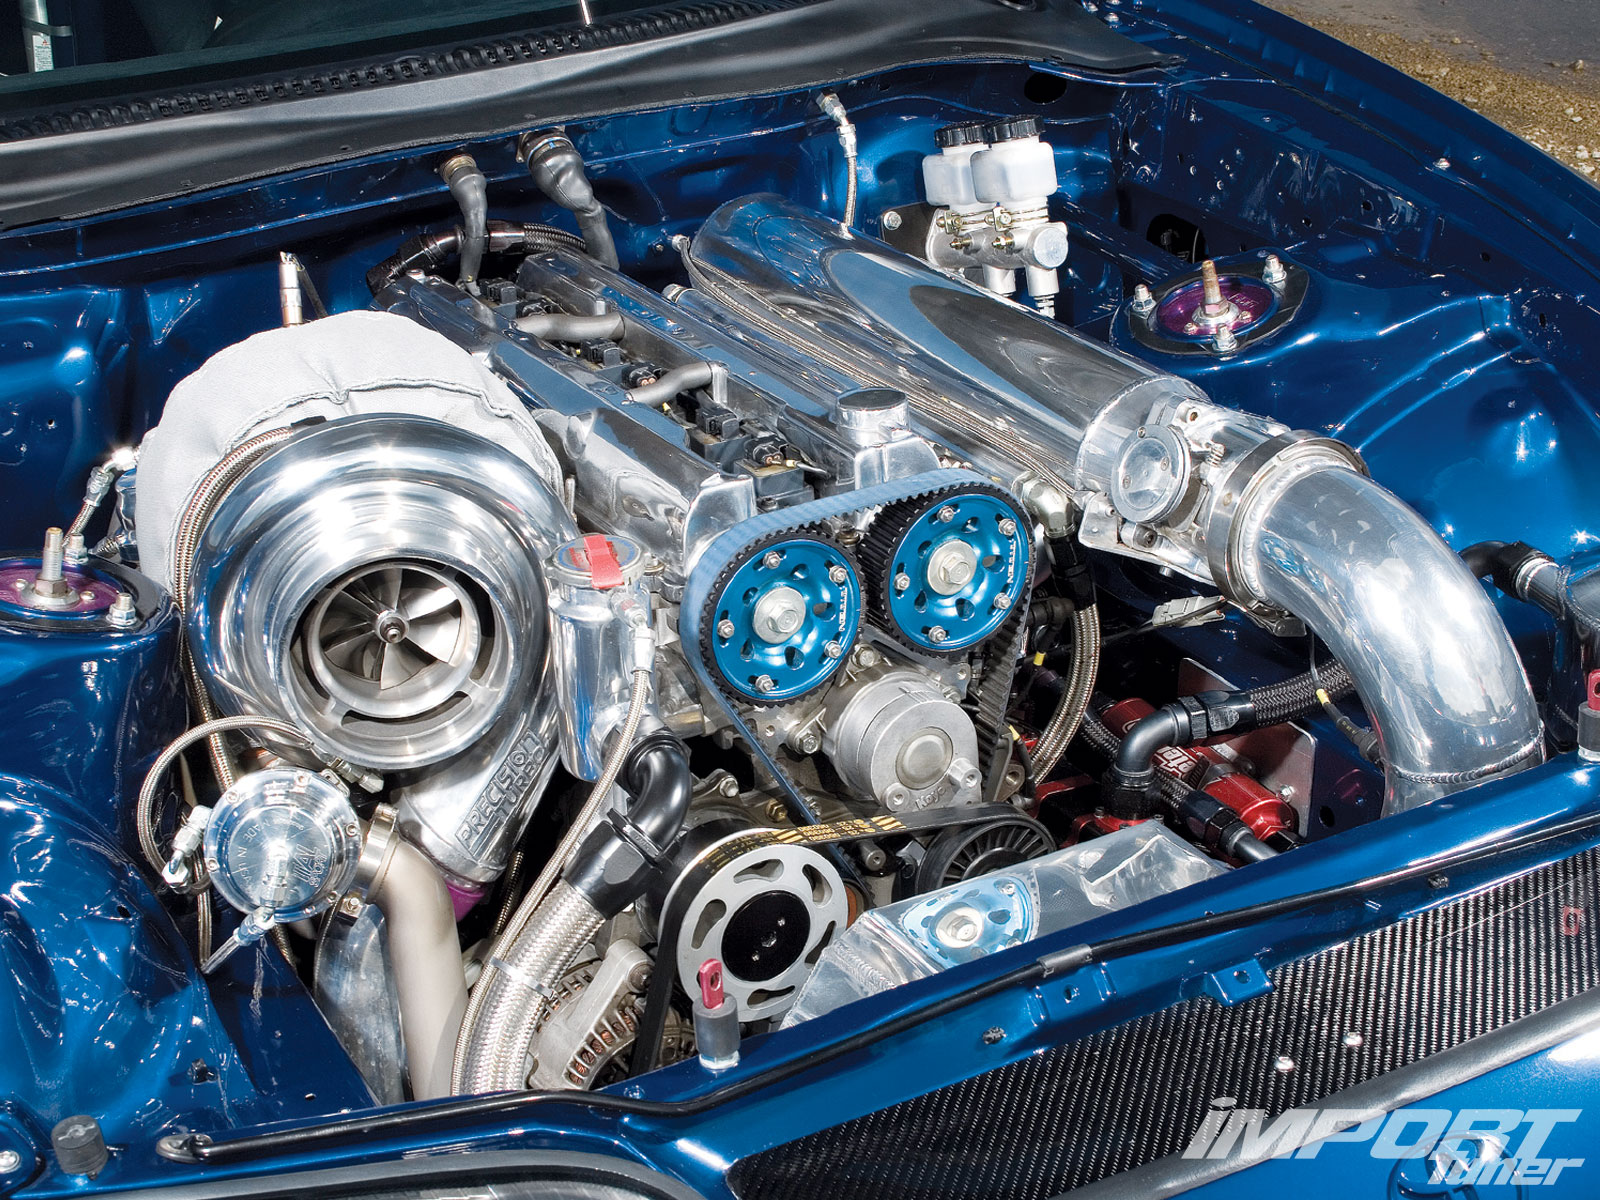 Impp O Toyota Supra Engine View